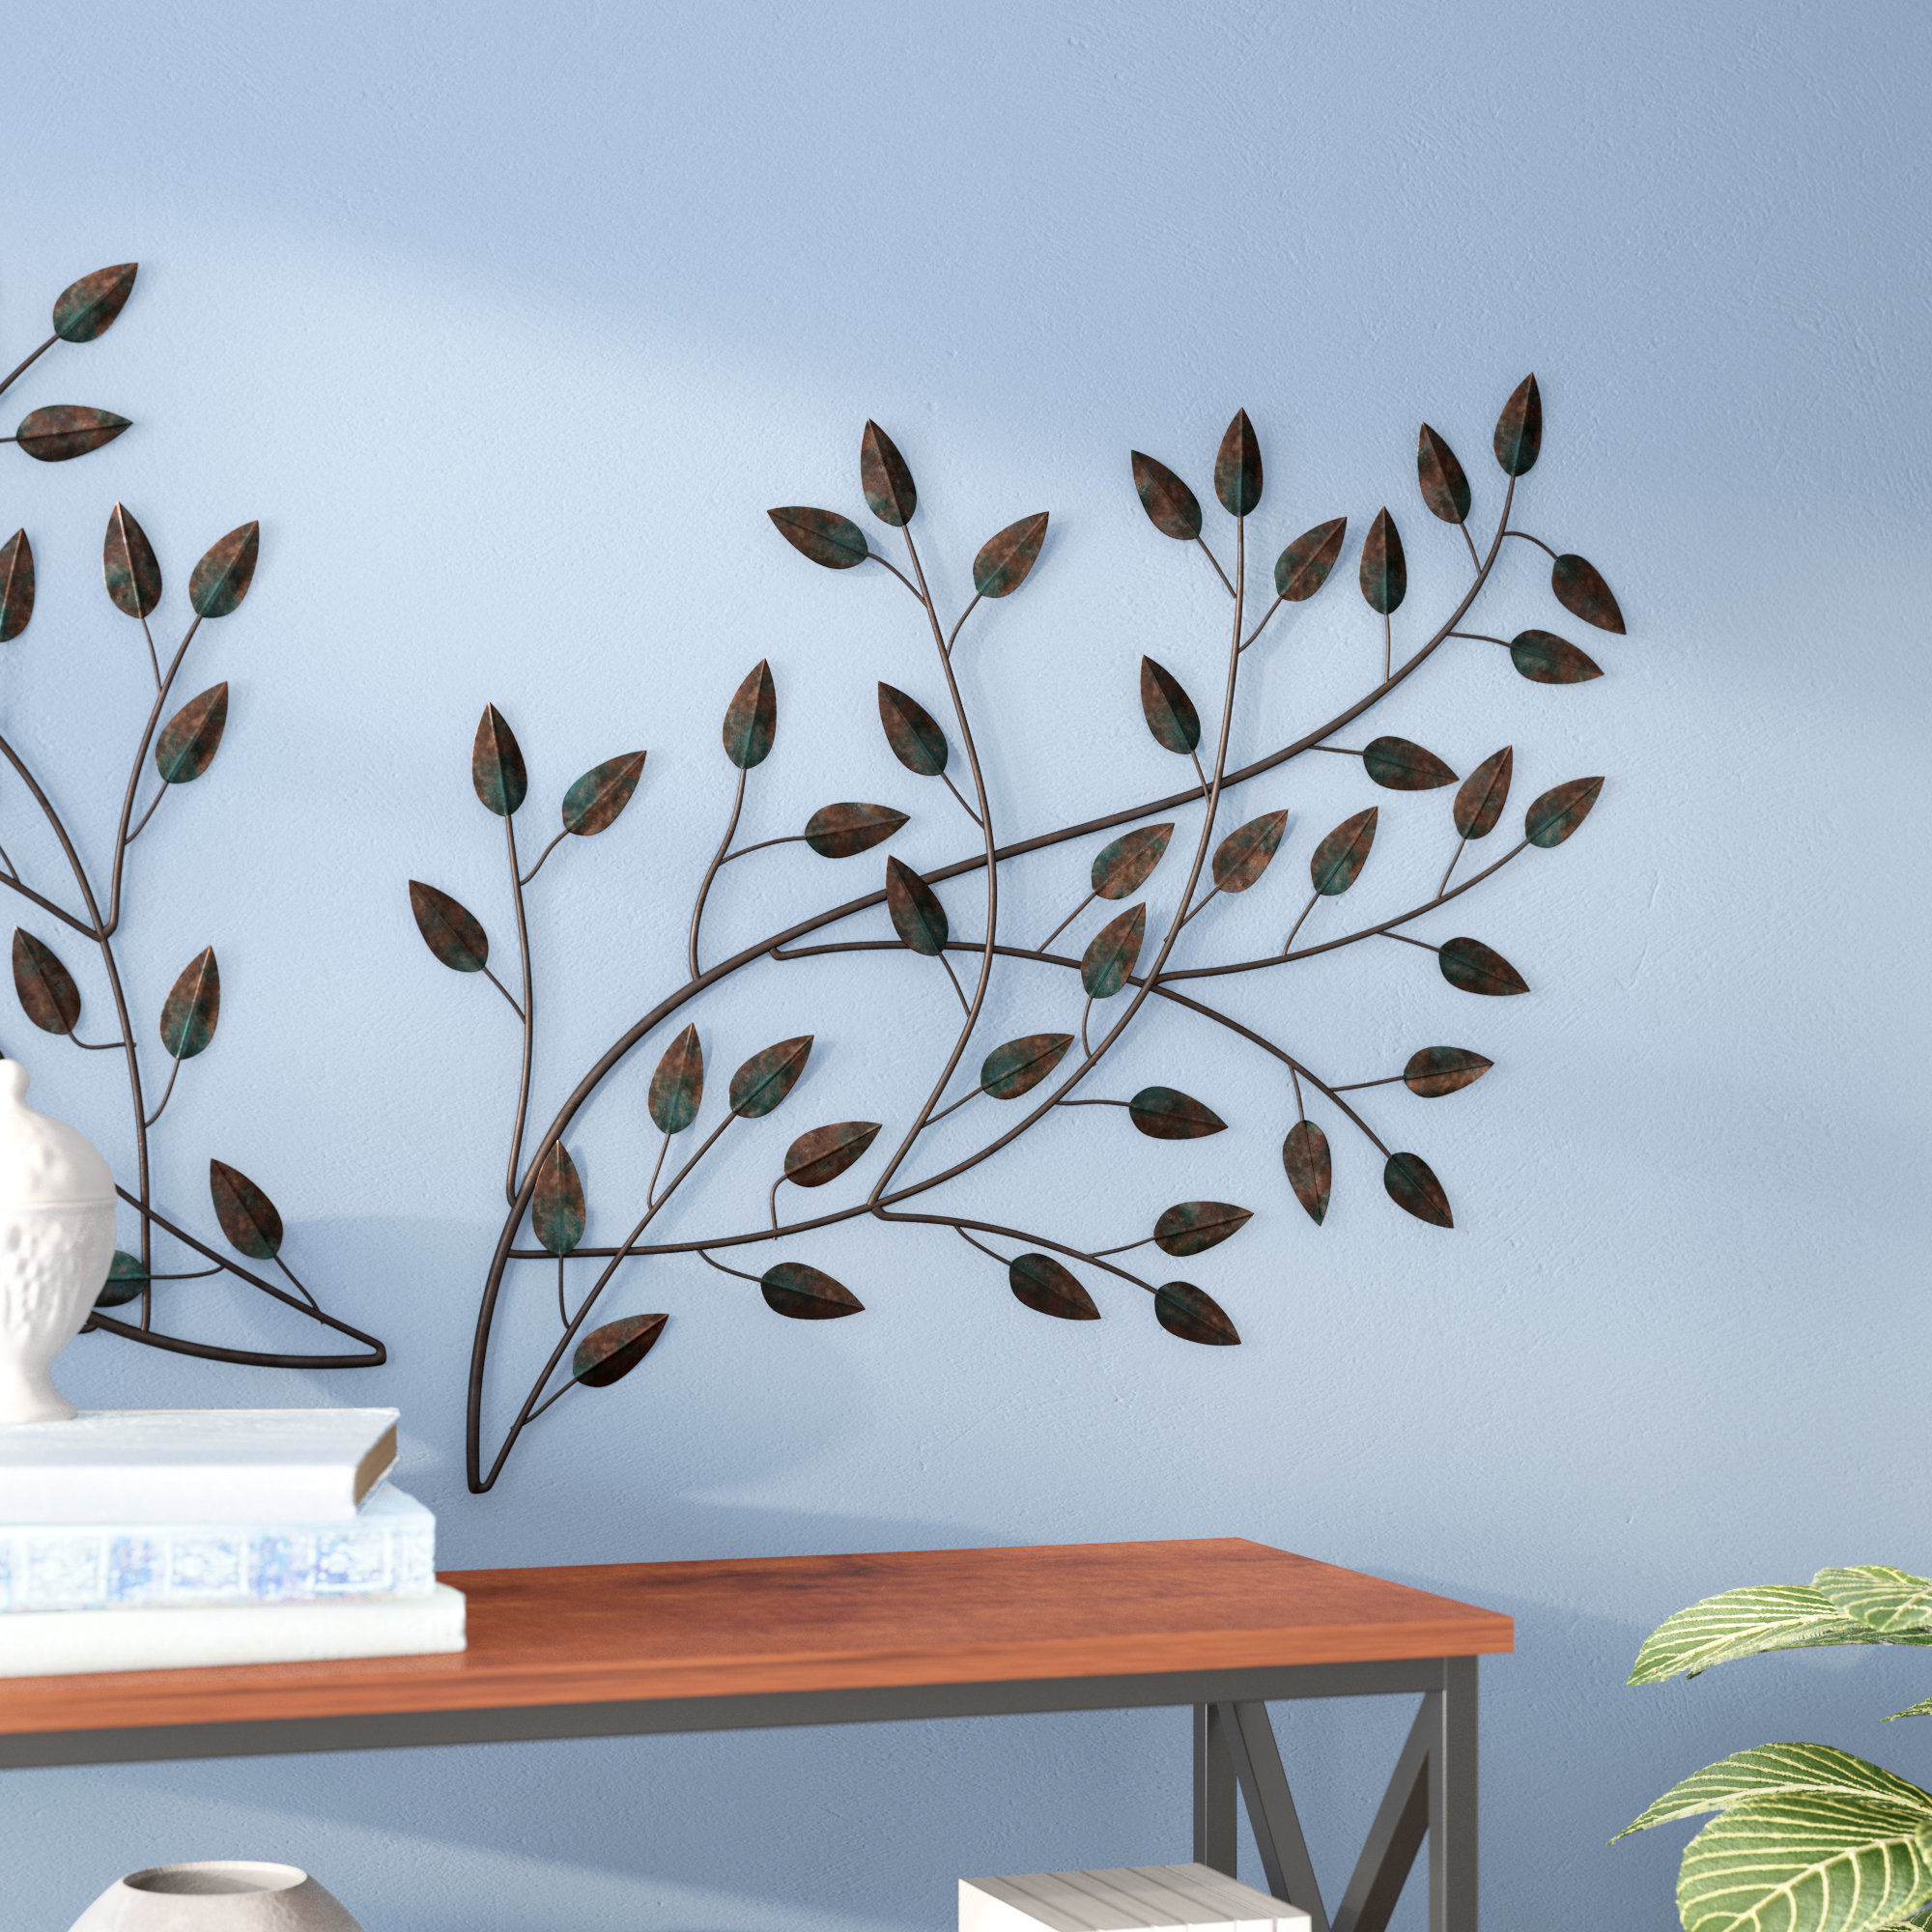 Wayfair With Regard To Well Liked Windswept Tree Wall Decor By World Menagerie (Gallery 19 of 20)